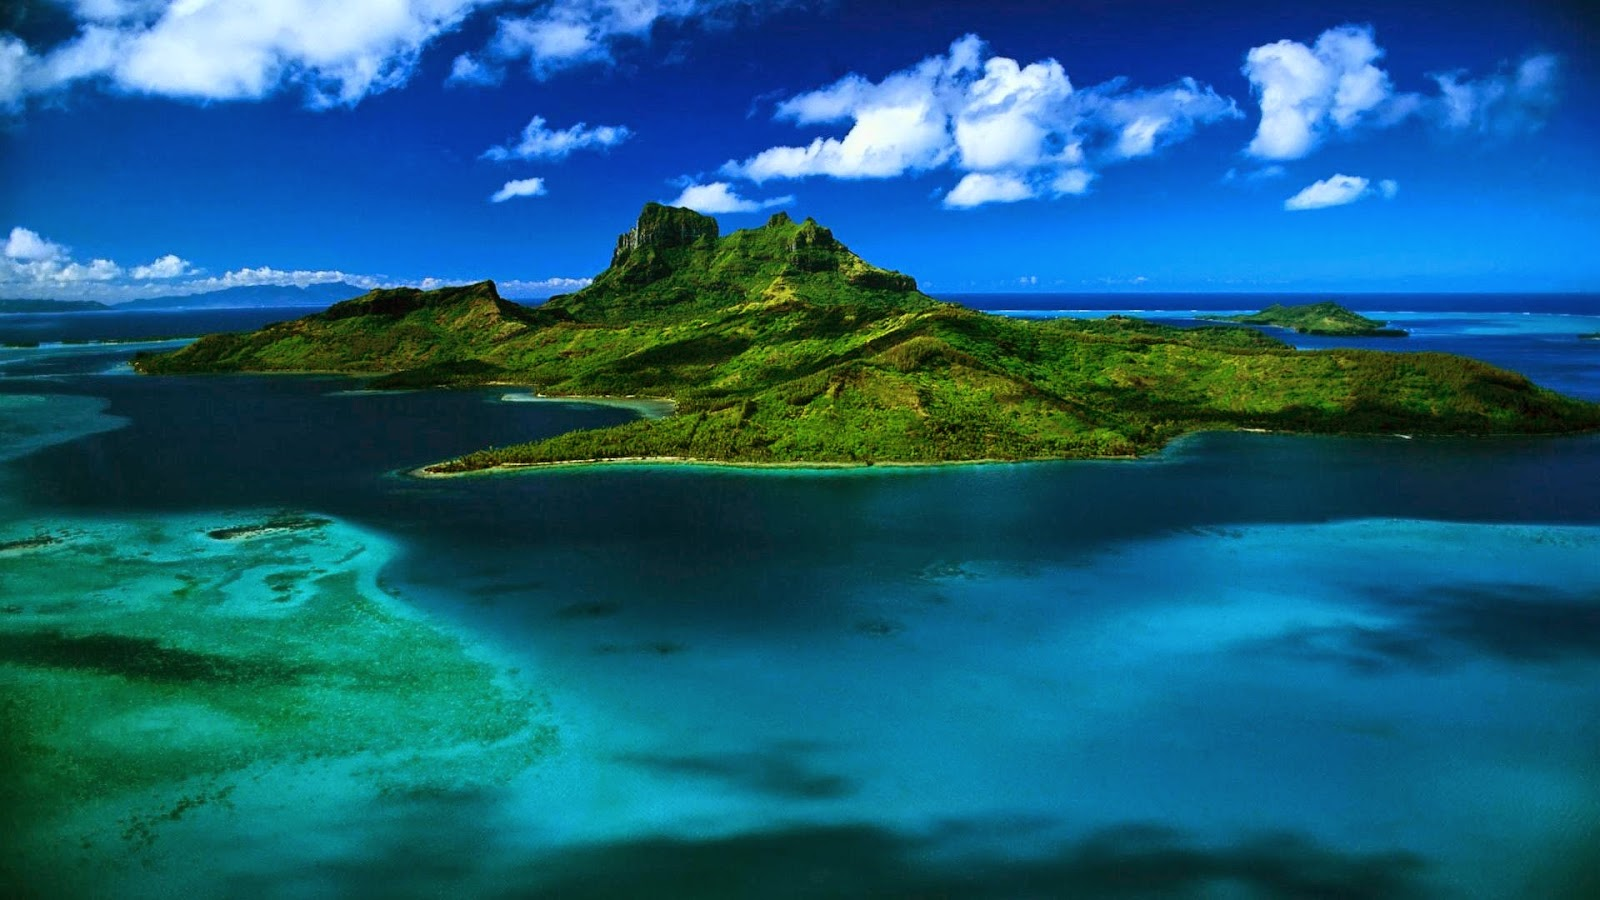 Beautiful Places Nature Images Island Cloudy HD Wallpapers Free Downloads